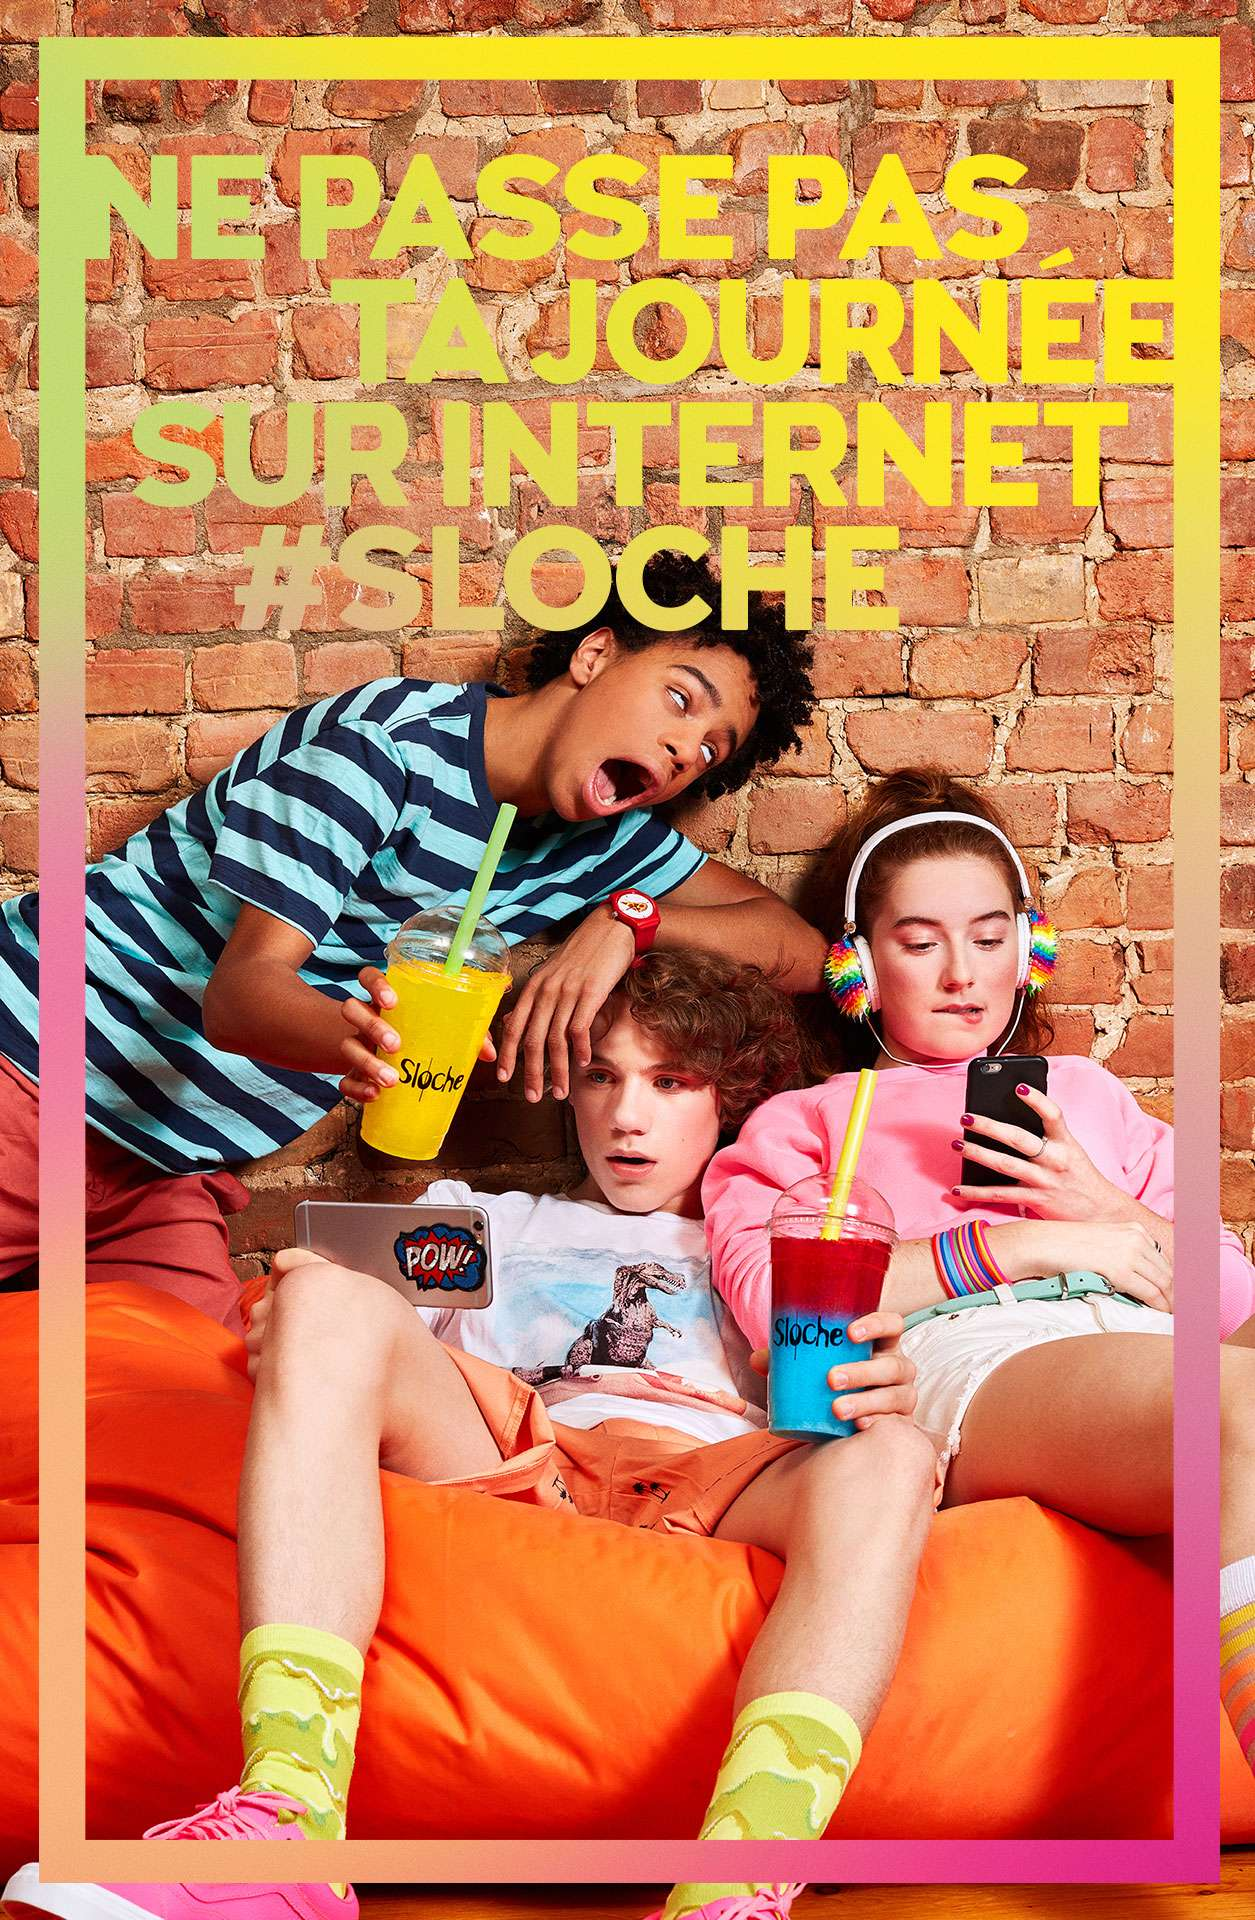 three teenagers on orange bean bag watching things on smartphones holding slurpees by Jocelyn Michel for Sloche Couche Tard with Havas